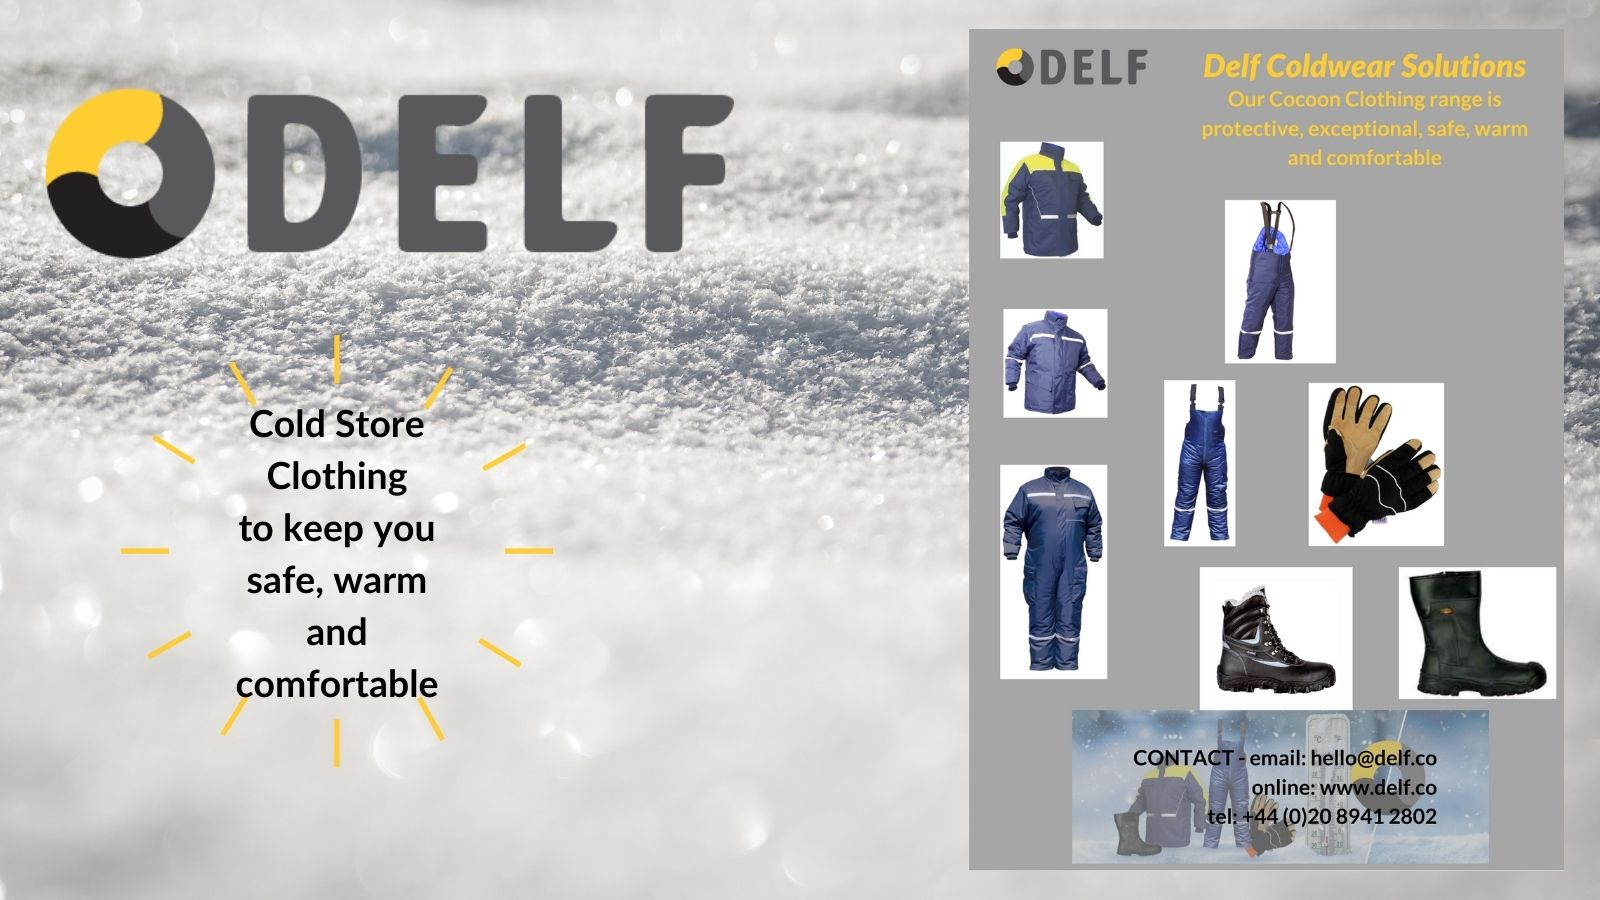 Cold store clothing